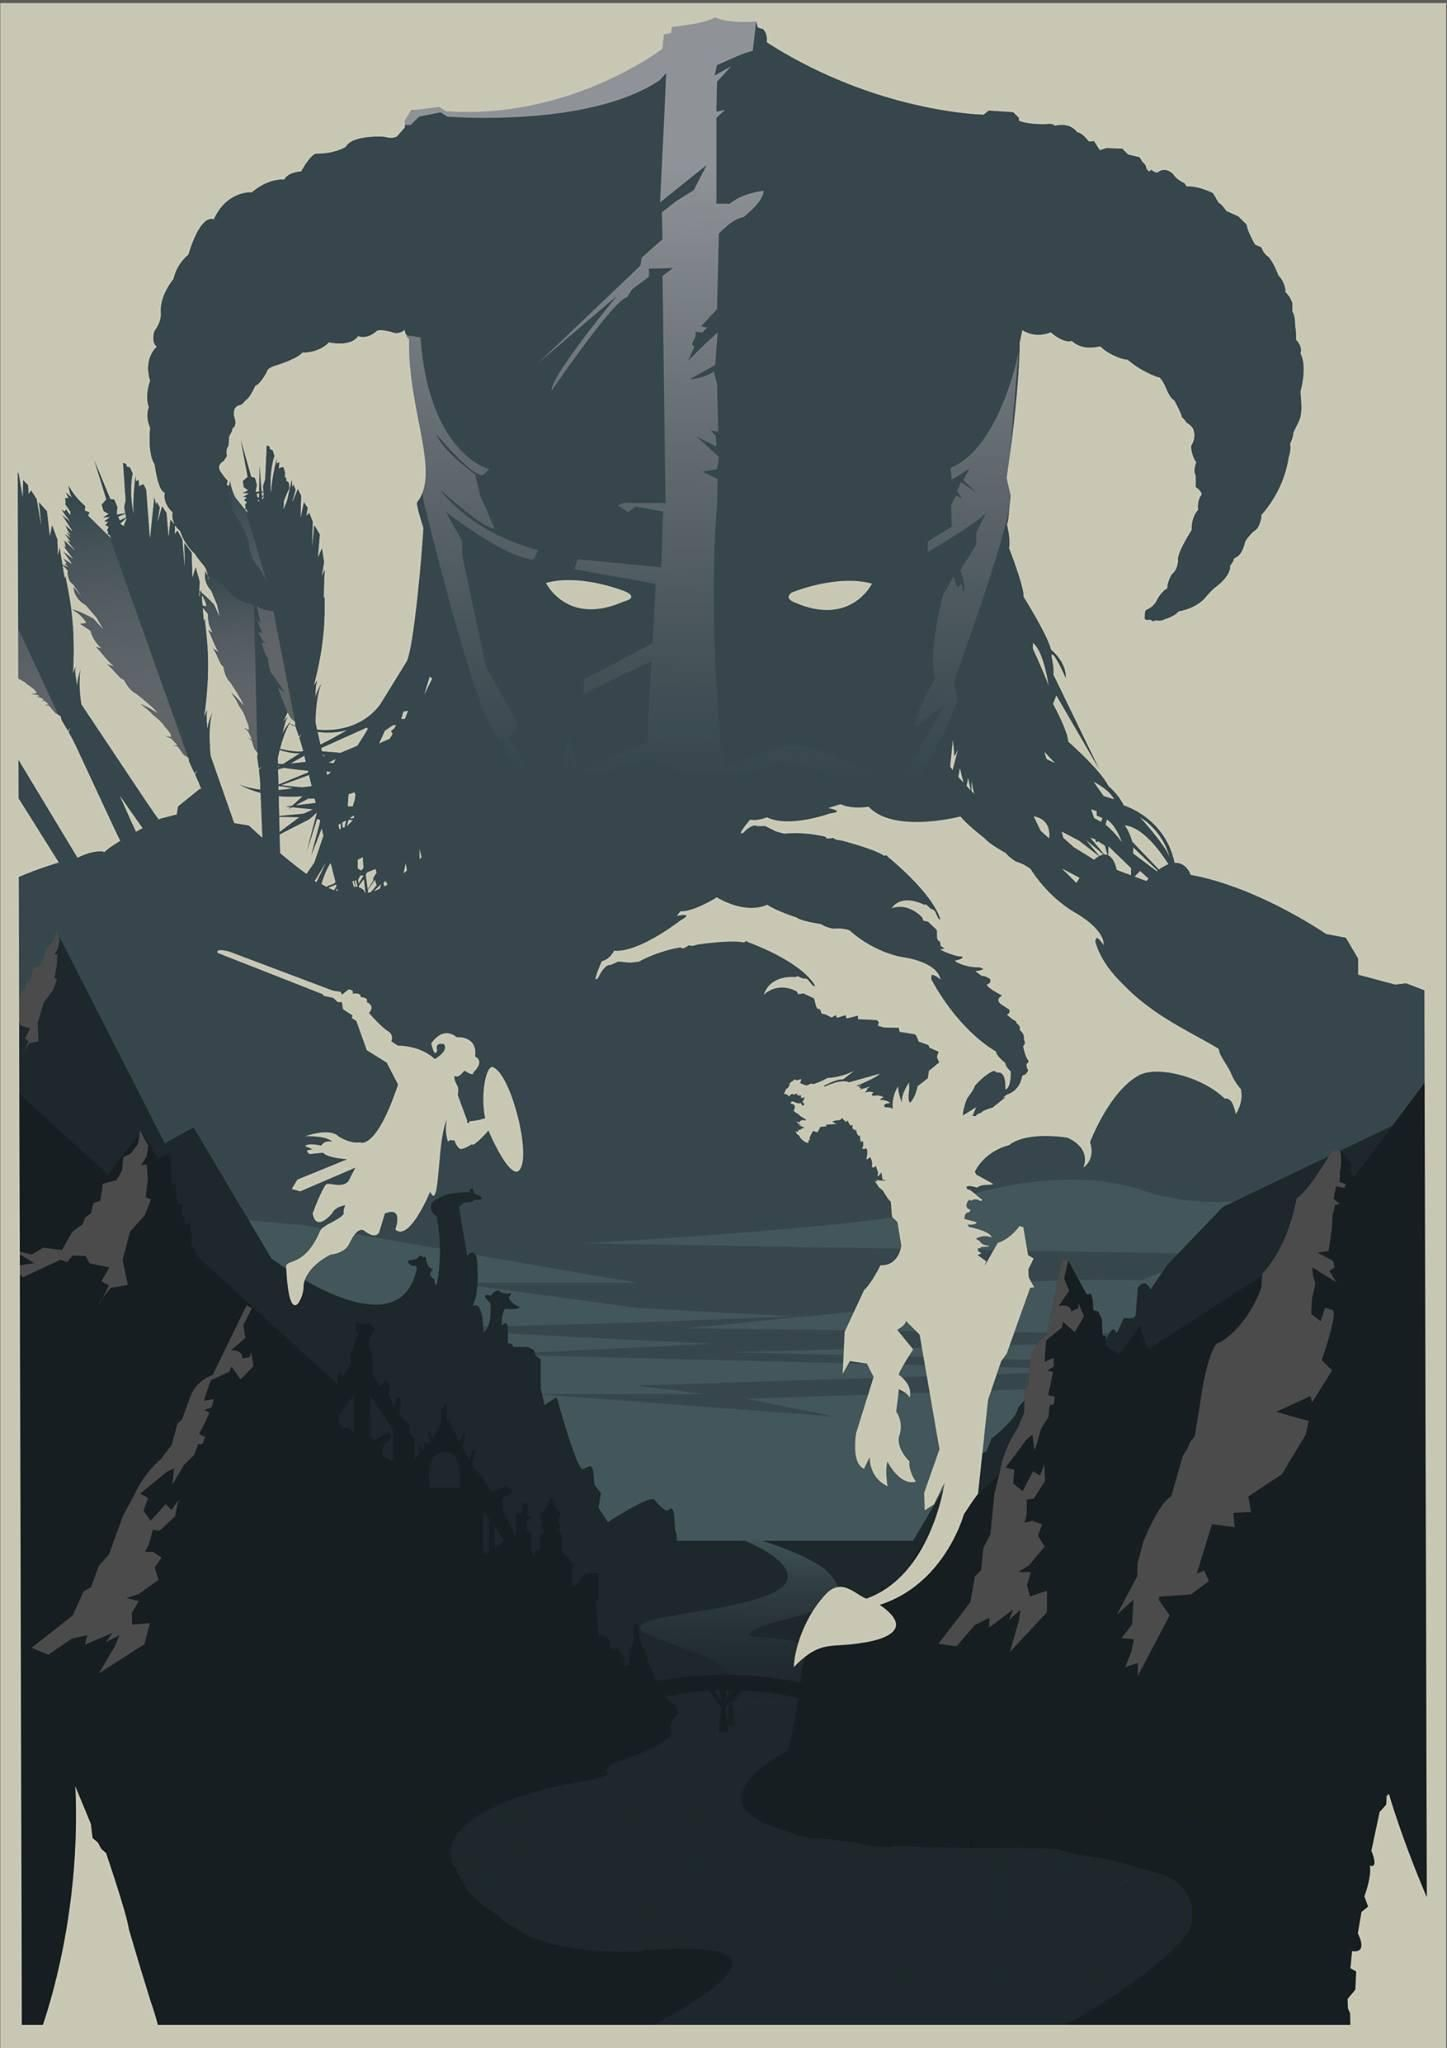 Pin By Anisa Bhita On Game Pinterest Skyrim Elder Scrolls And Games